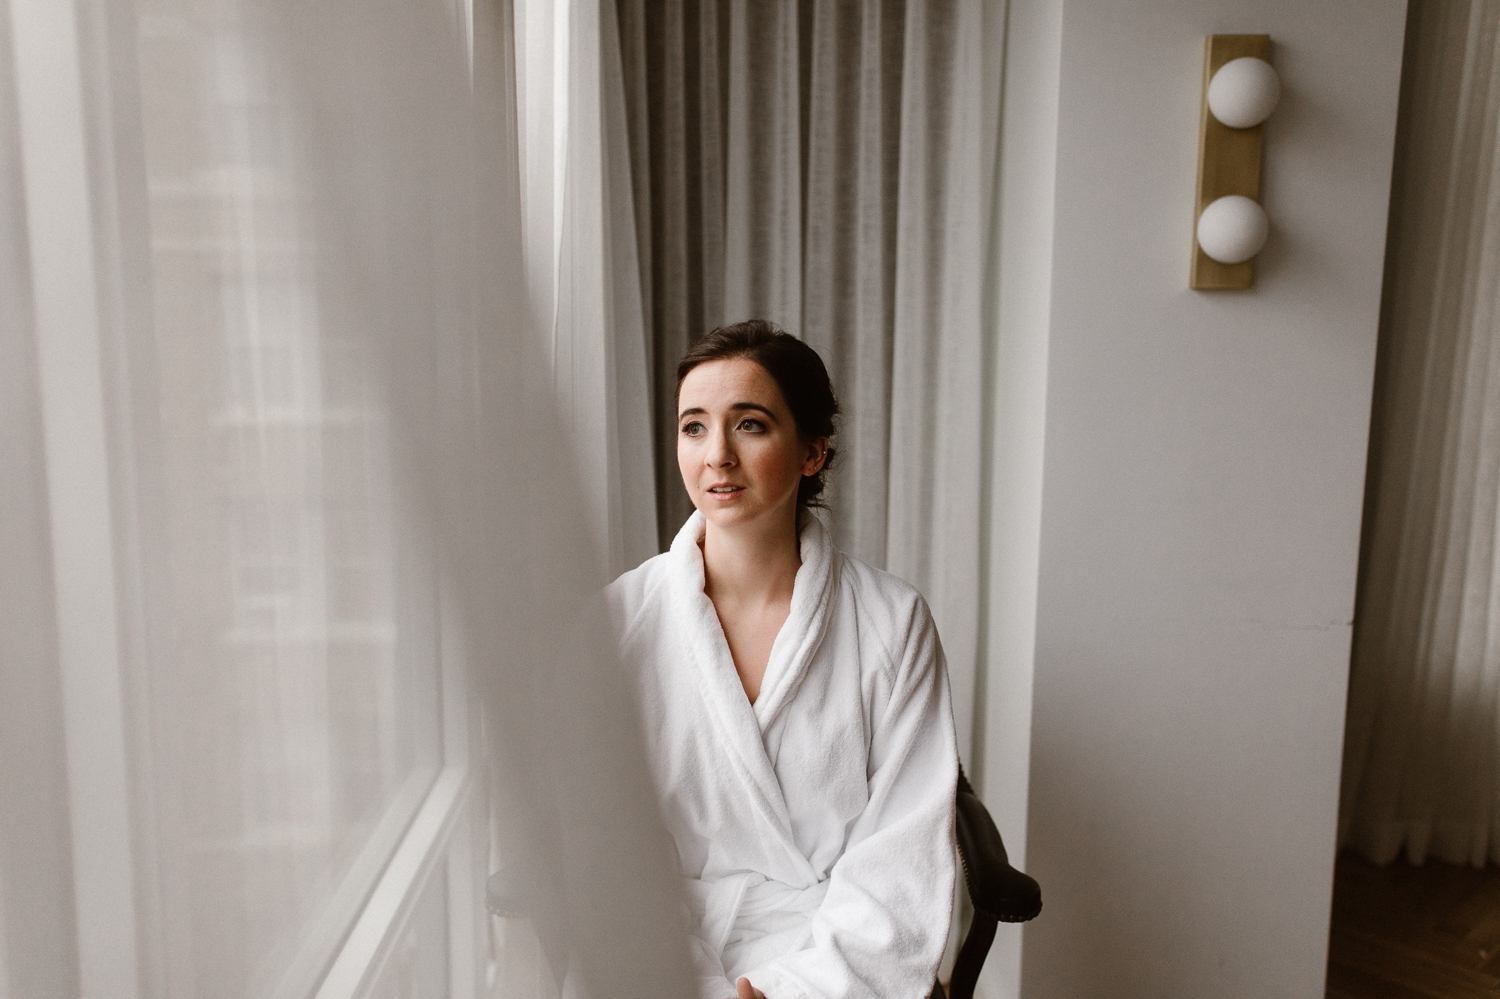 washington-dc-the-line-hotel-bride-getting-ready-photographs 8.jpg